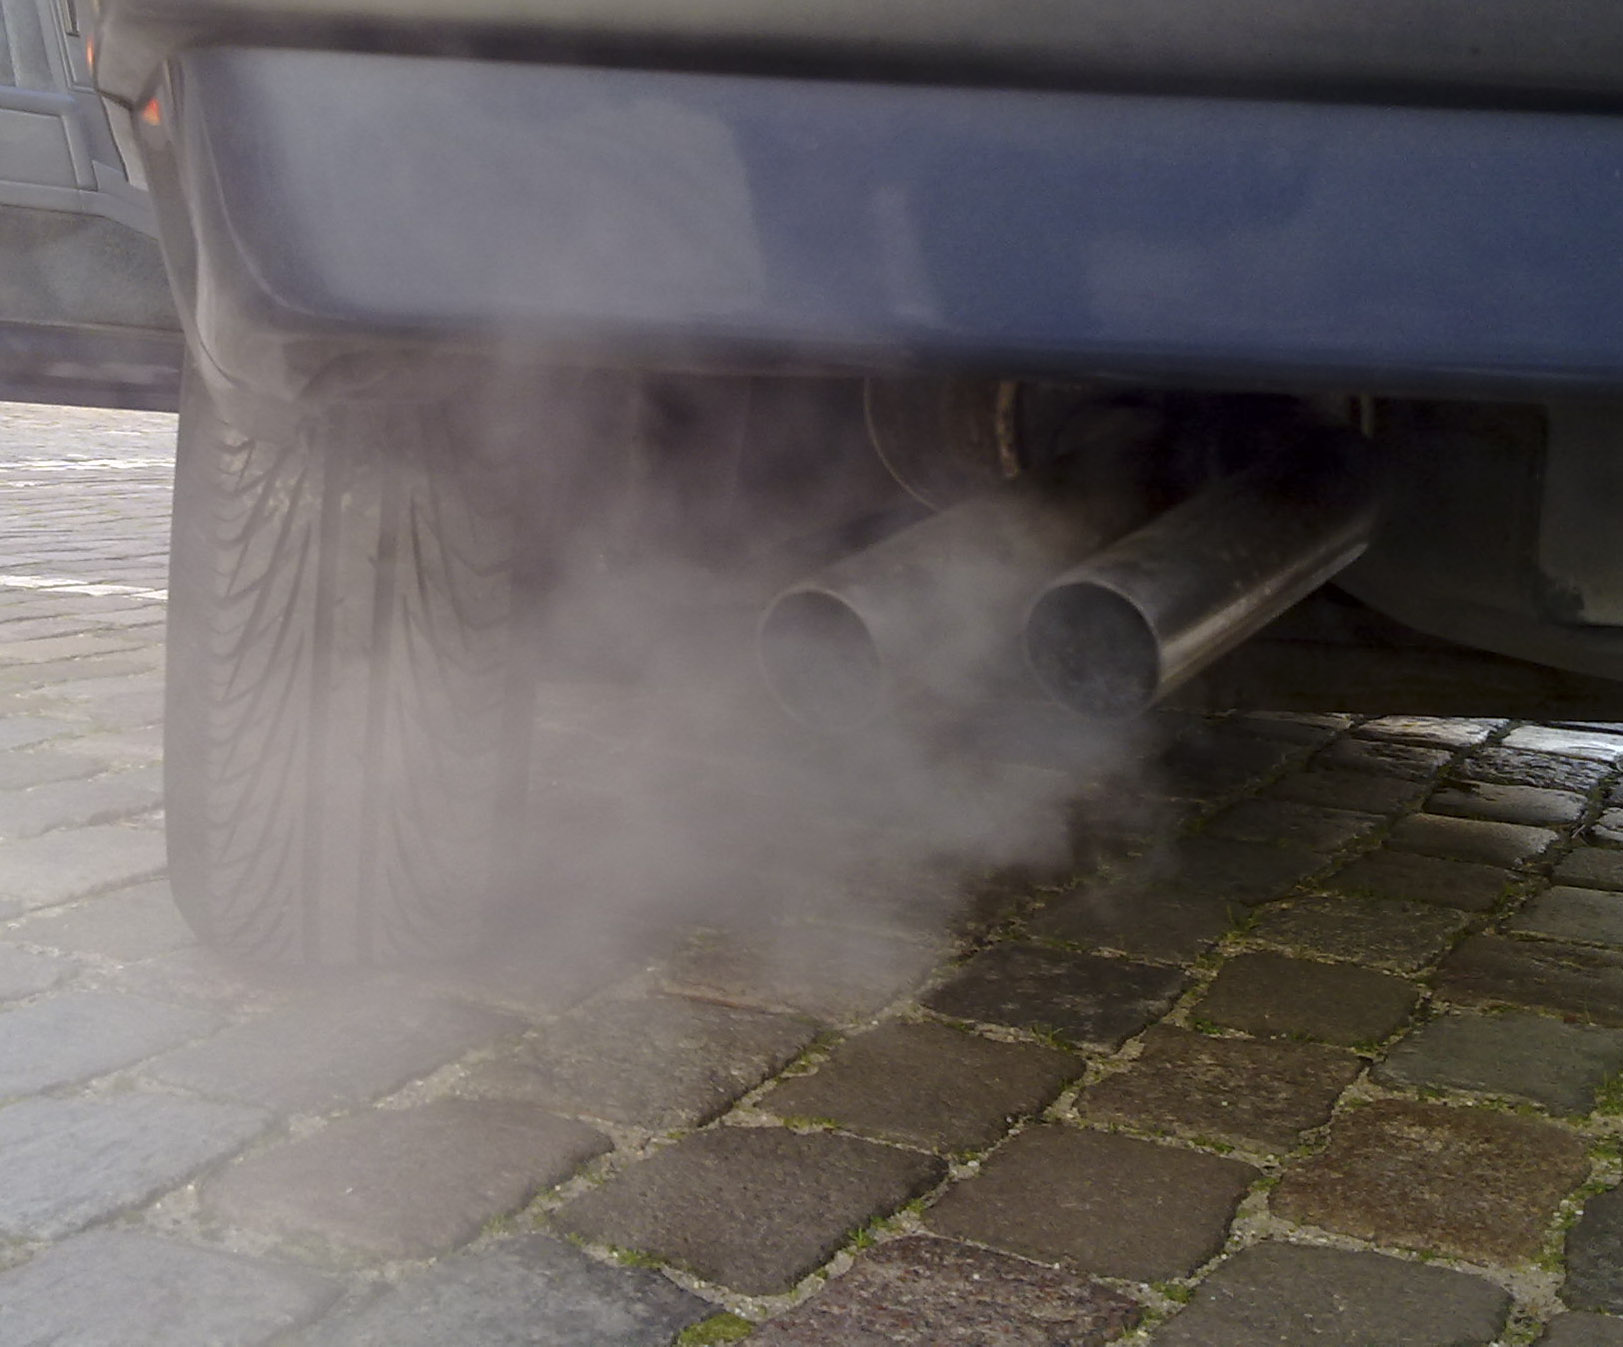 vehicle exhaust